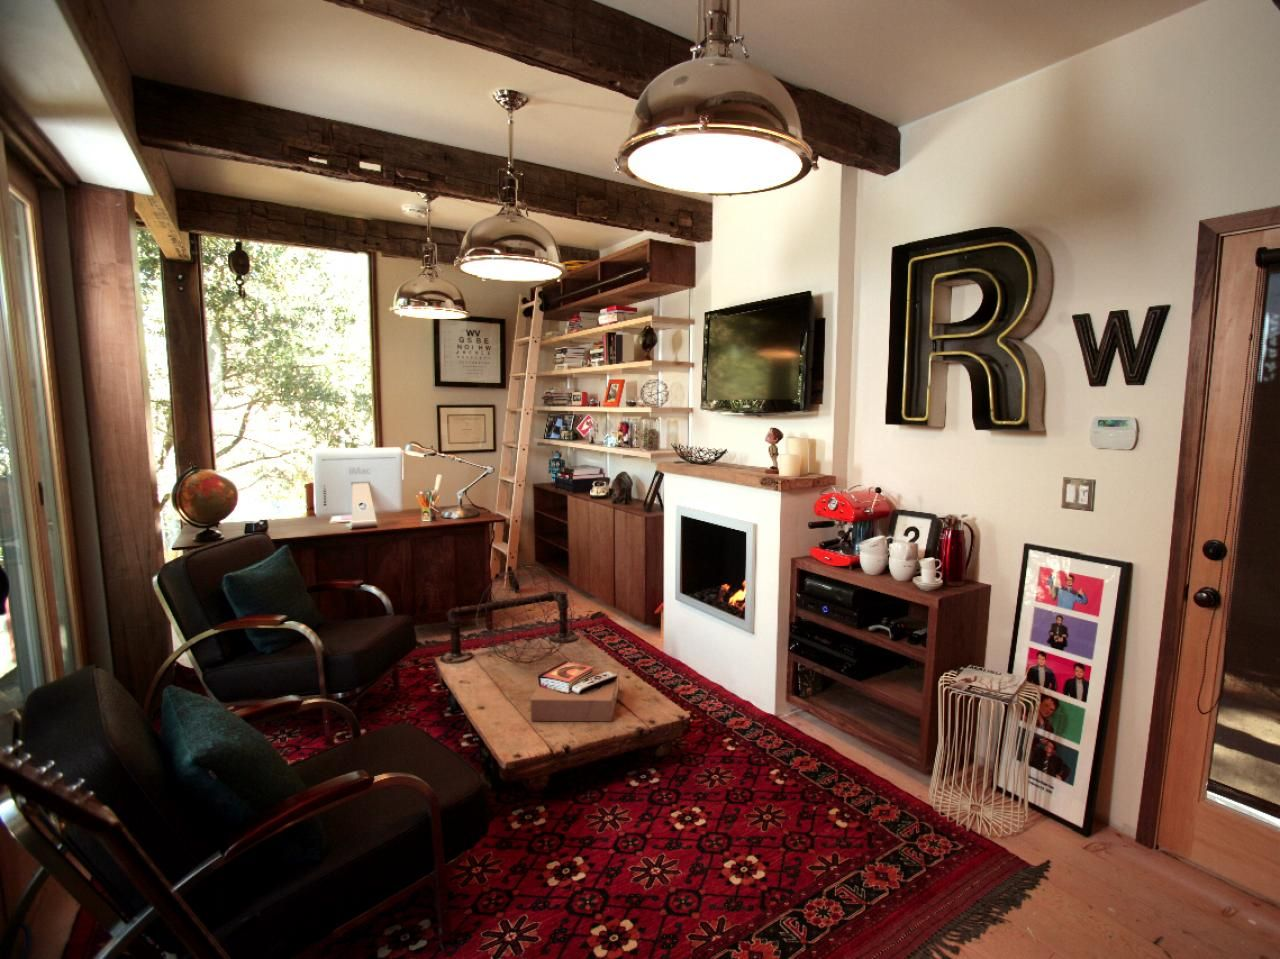 Rainn Wilson S Home Office Man Cave Small Room Design Small